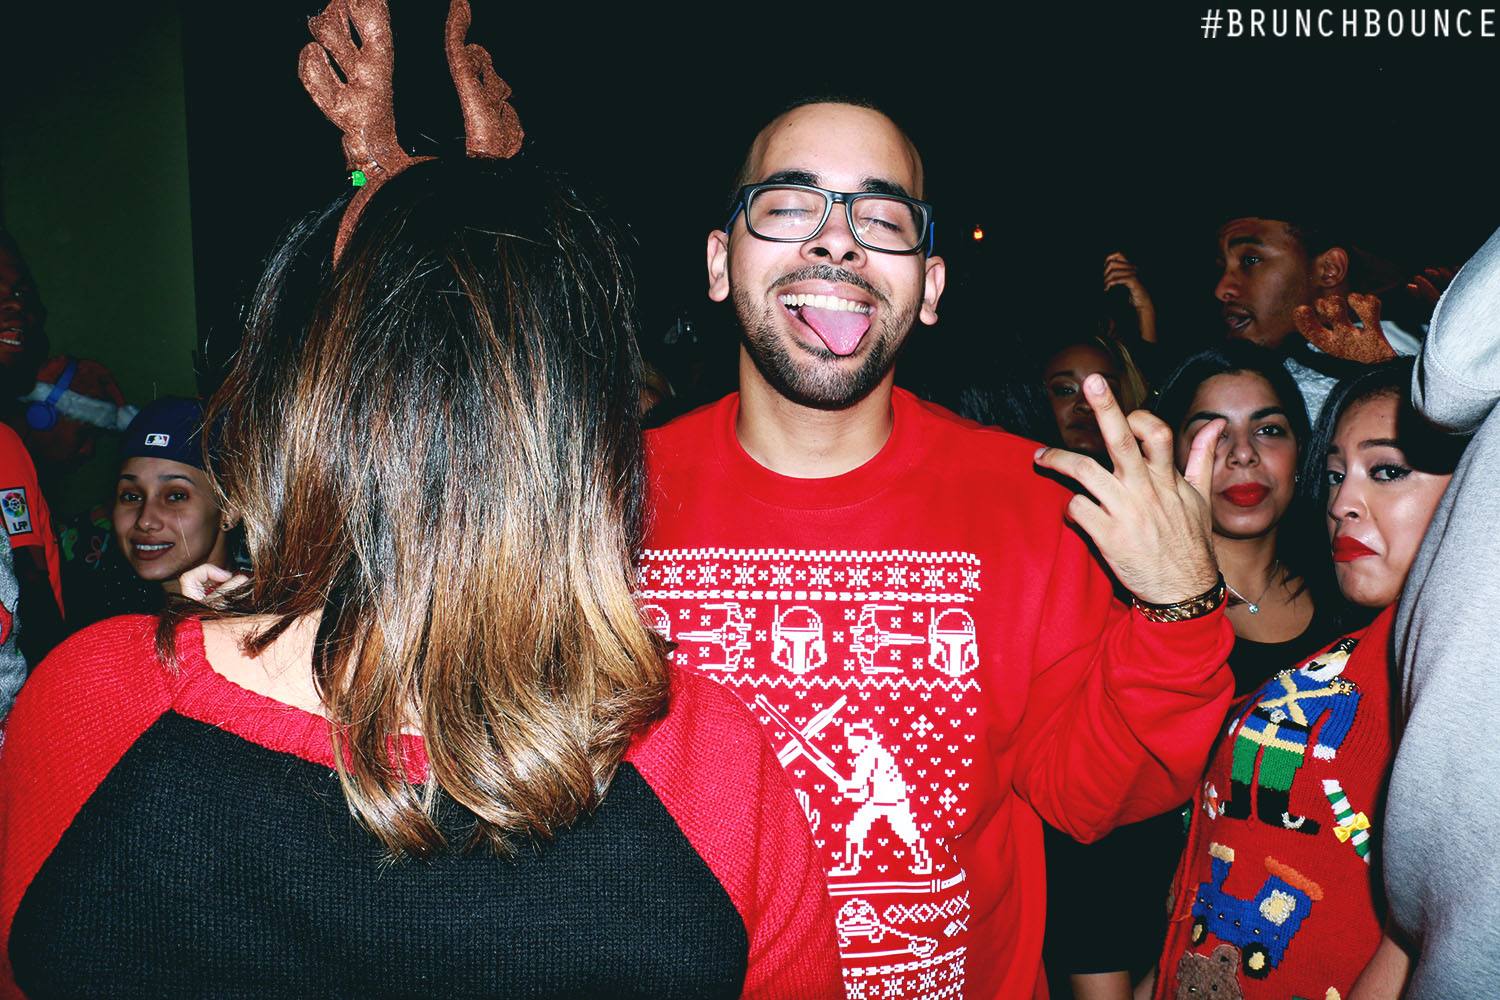 brunchbounce-ugly-christmas-sweater-party-122014_15896645249_o.jpg